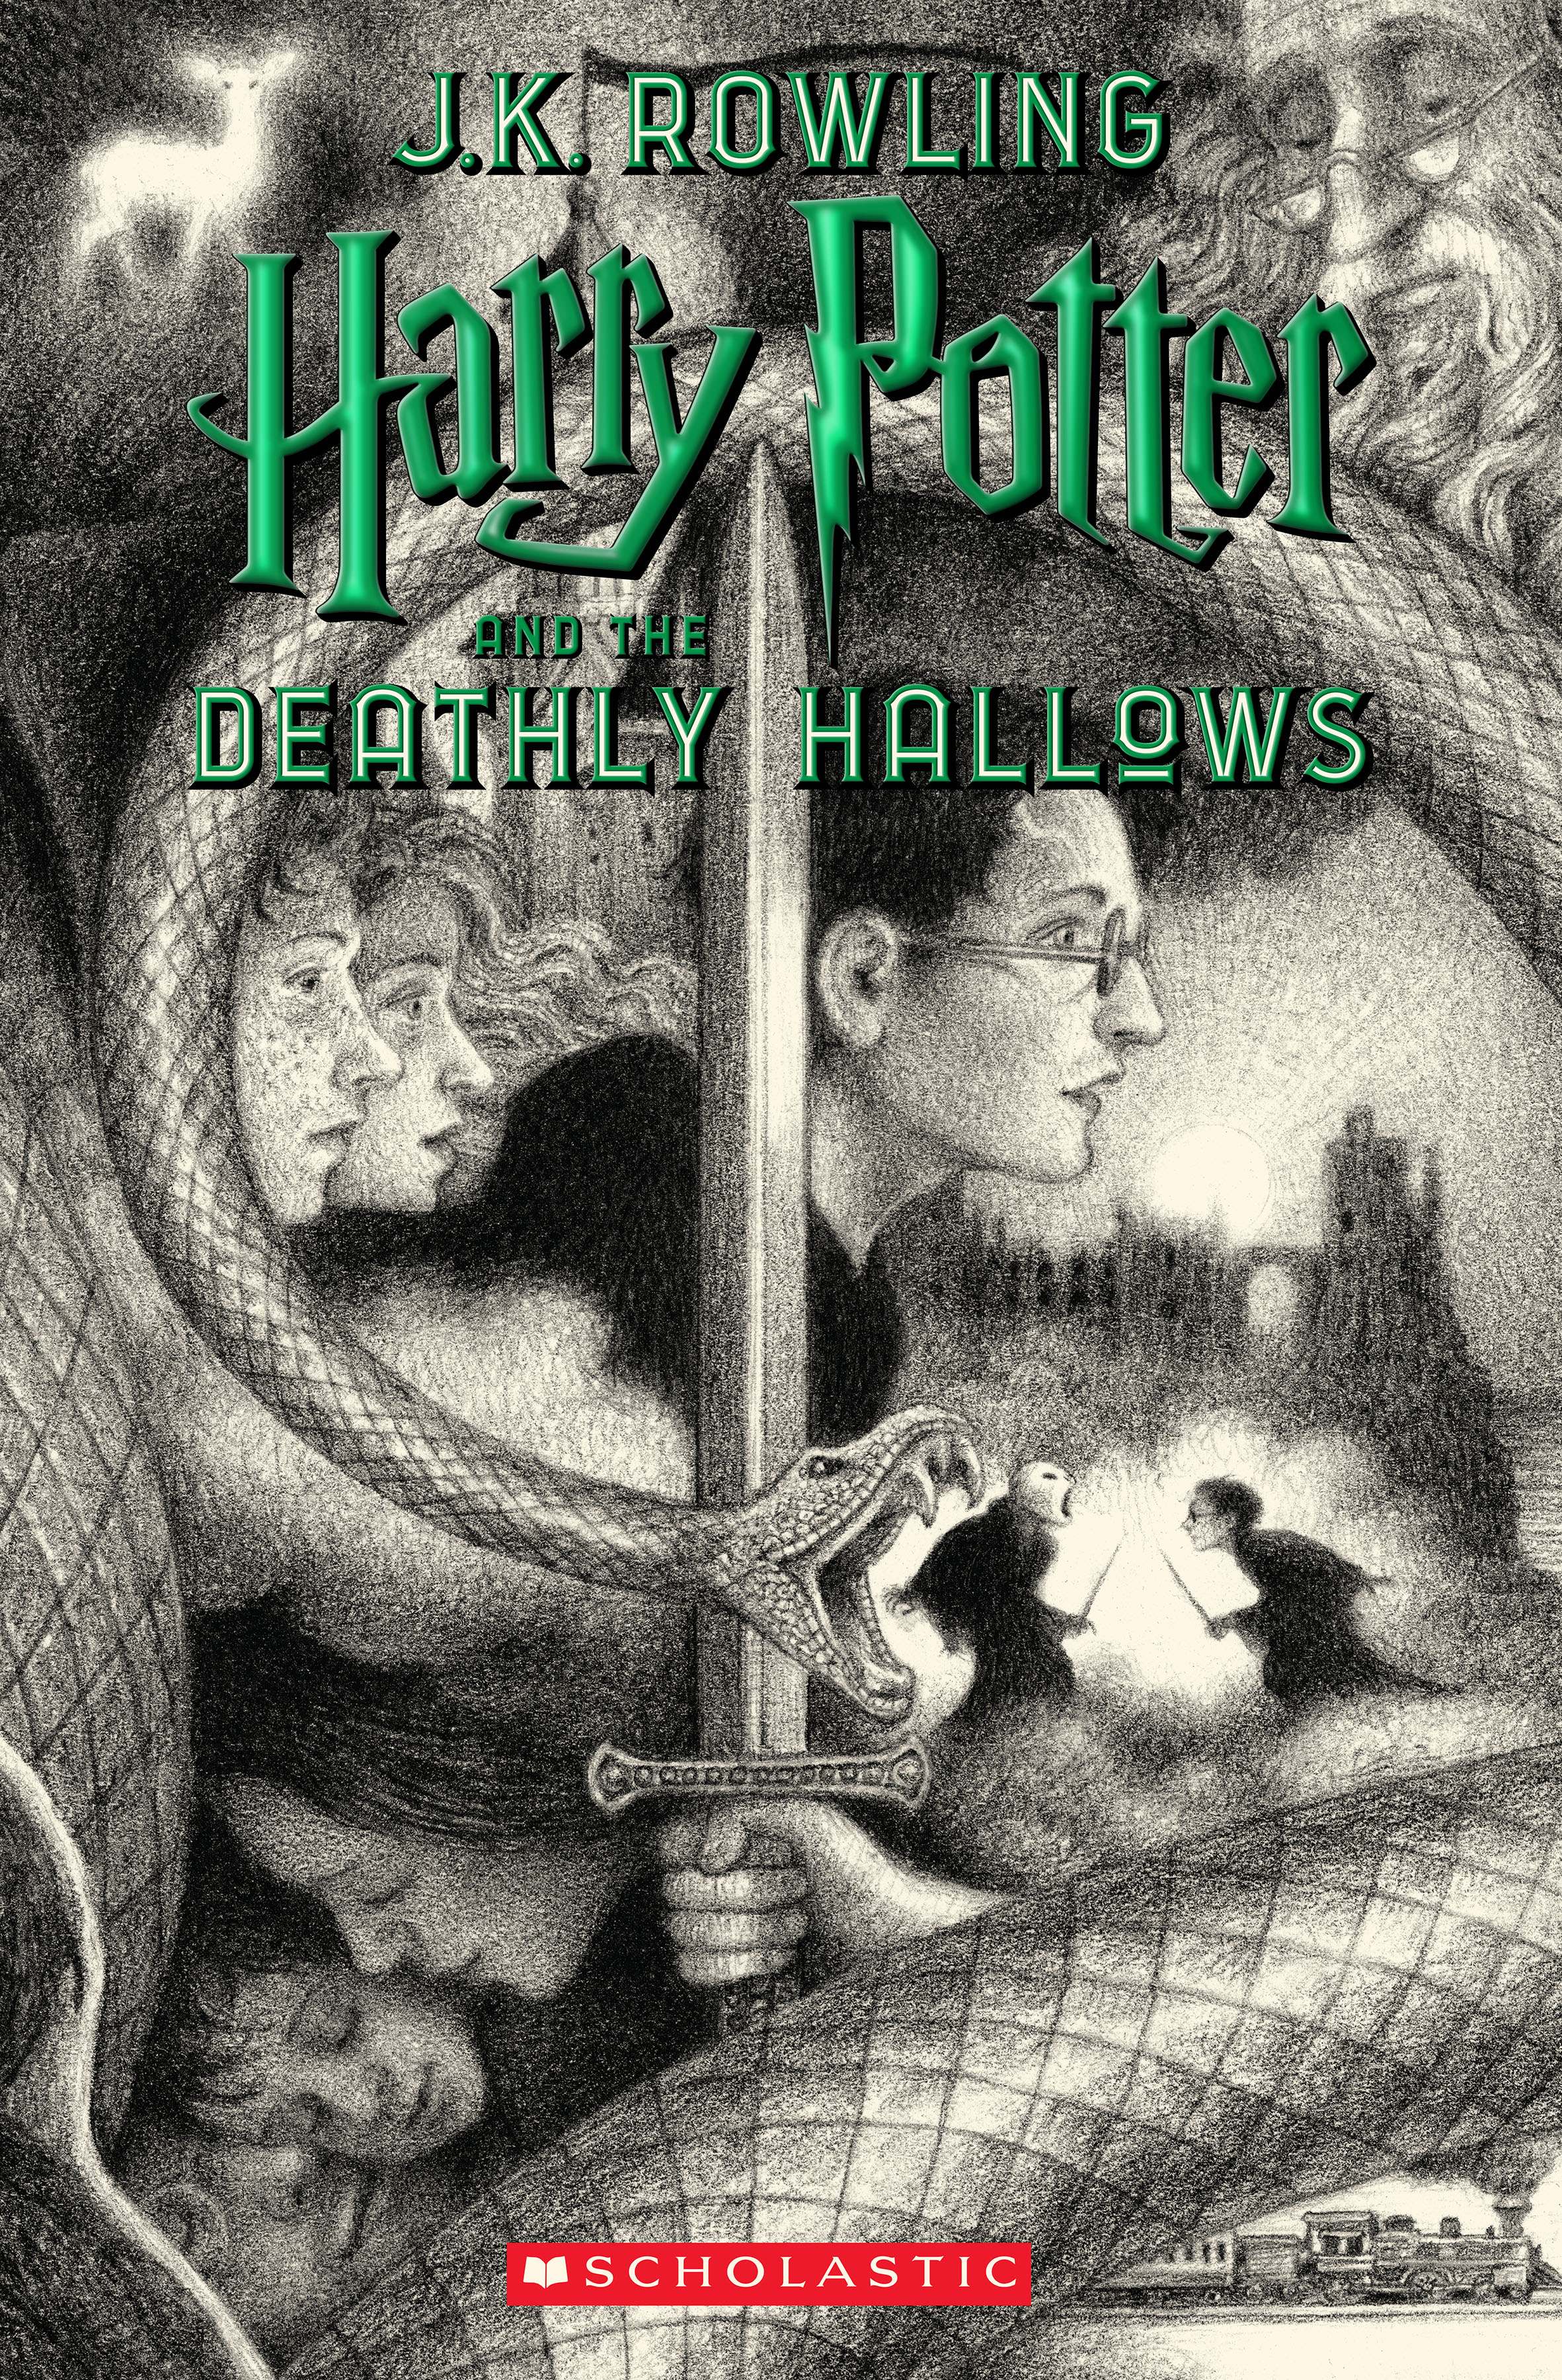 deathly hallows scholastic